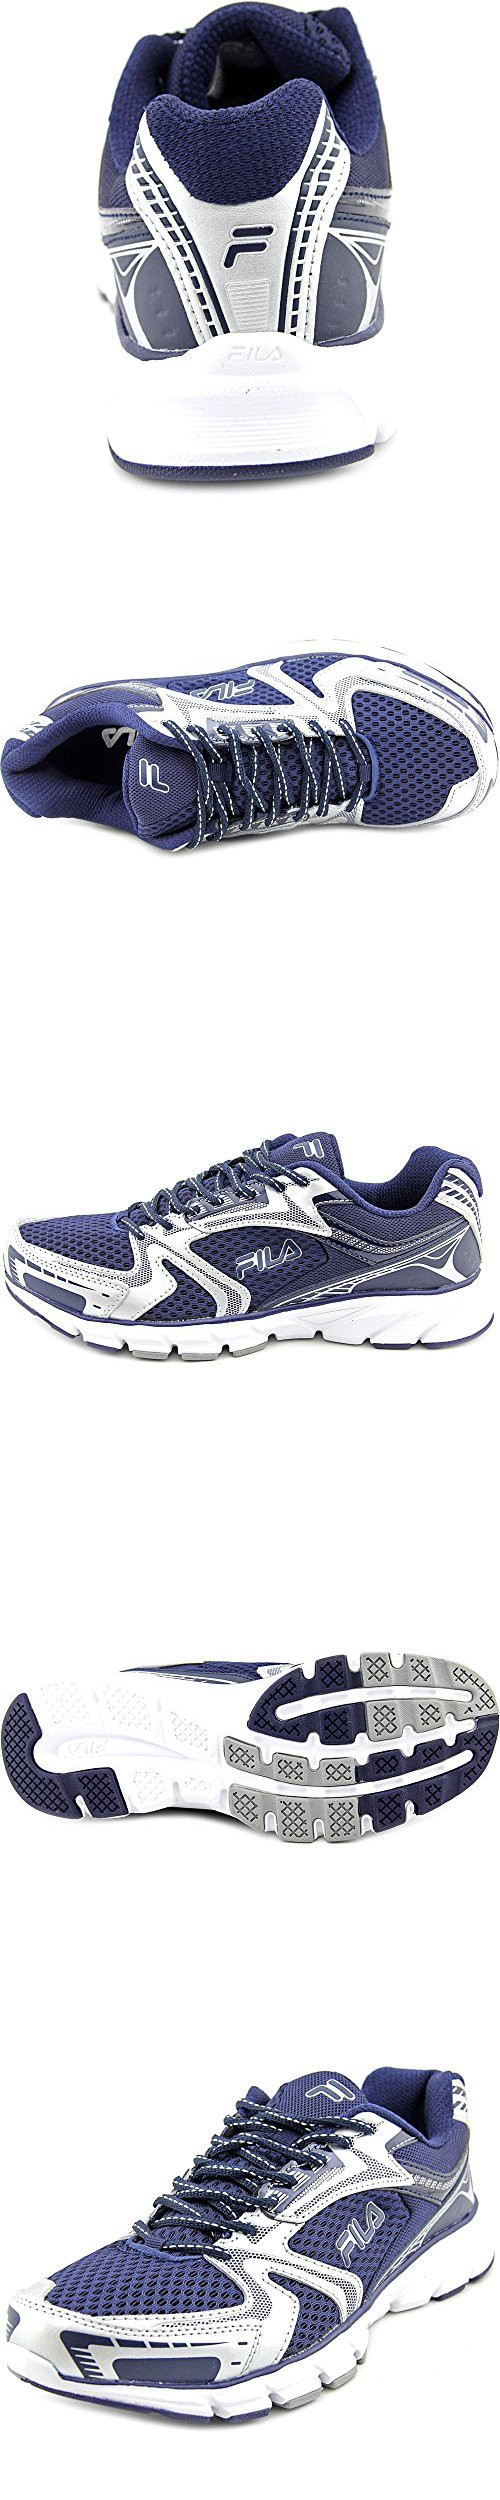 3a1c4d63e4dc Fila Men s Approach Running Shoe